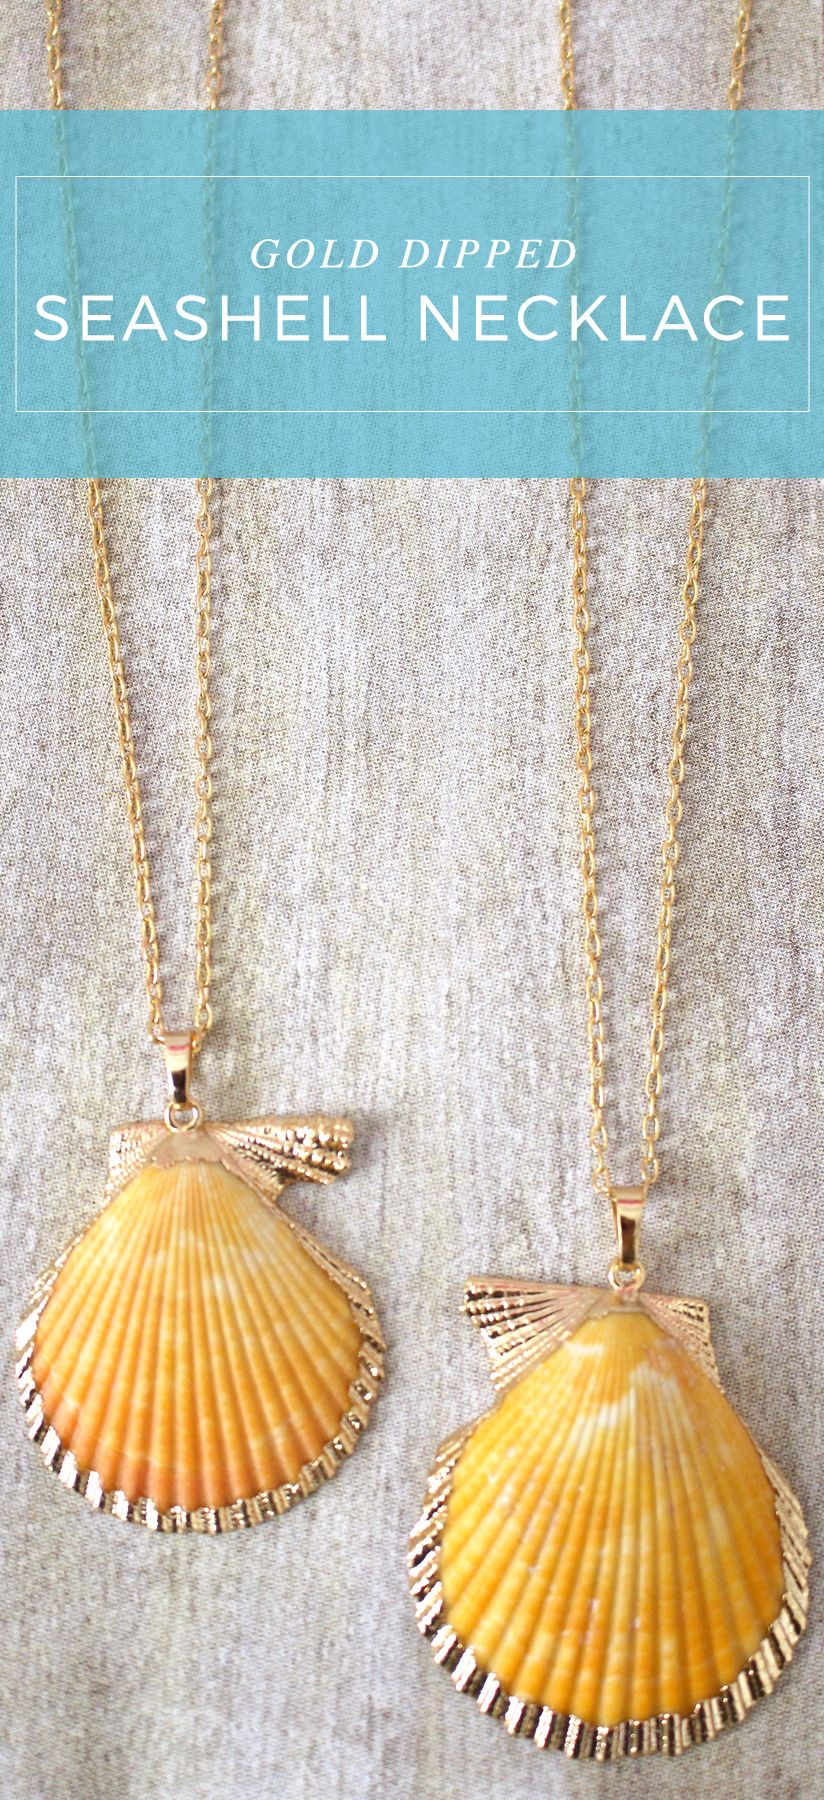 Gold Dipped Seashell Necklace | Boutique Jewelry | Dainty Jewelry | Lilly Pulitzer Style | elleandk.com